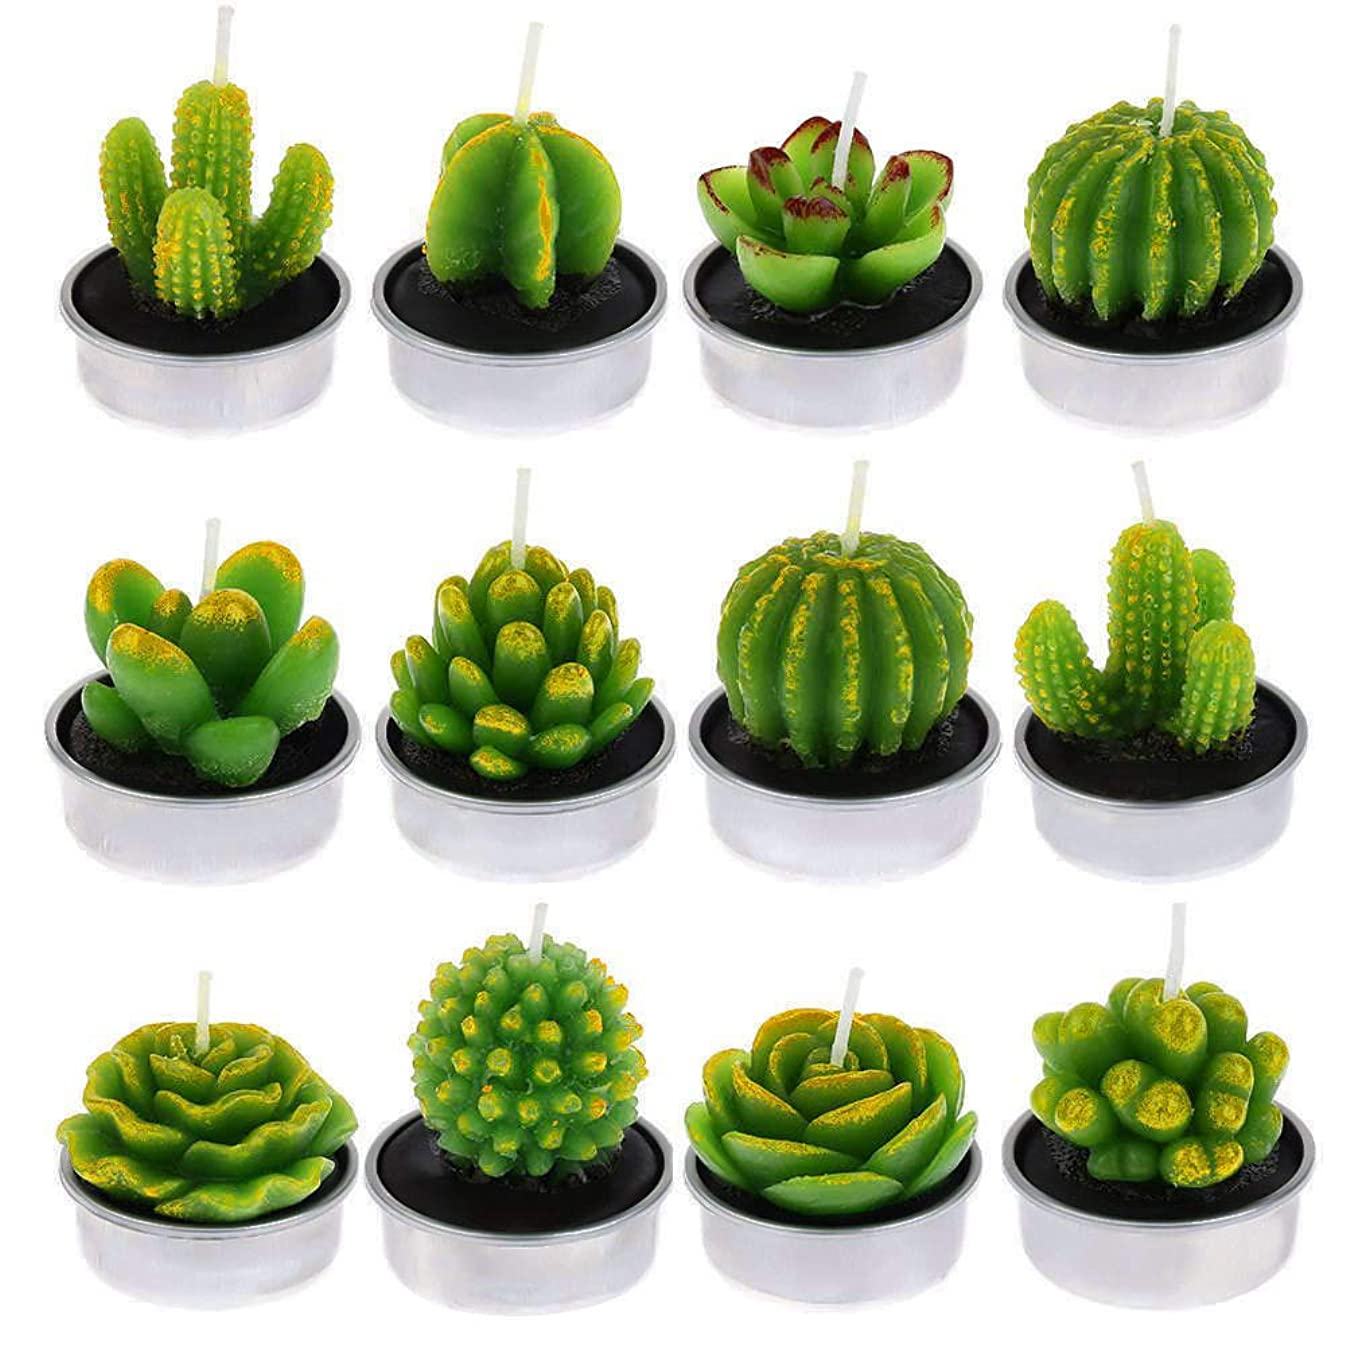 DaveandAthena 12 Pieces Cactus Tealight Candles Handmade Delicate Succulent Cactus Candles for Birthday Party, Wedding, Spa, Home Decoration (Style 2)